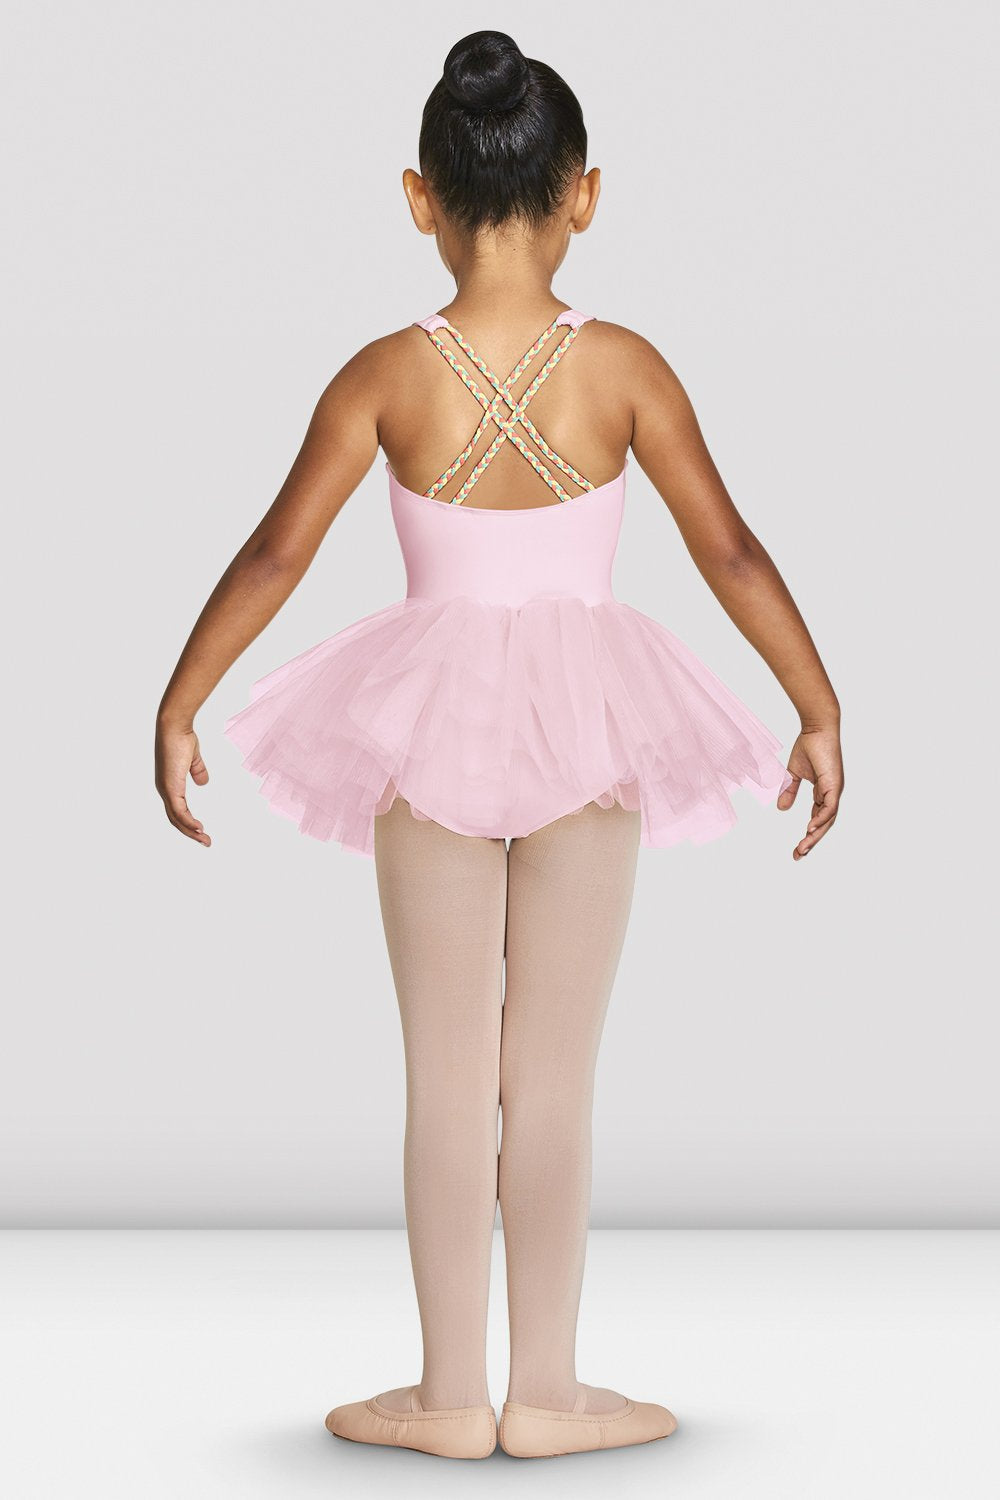 Candy pink Bloch Girls Clara Strap Tank Tutu Leotard on female model feet in first with arms in demi bra facing back